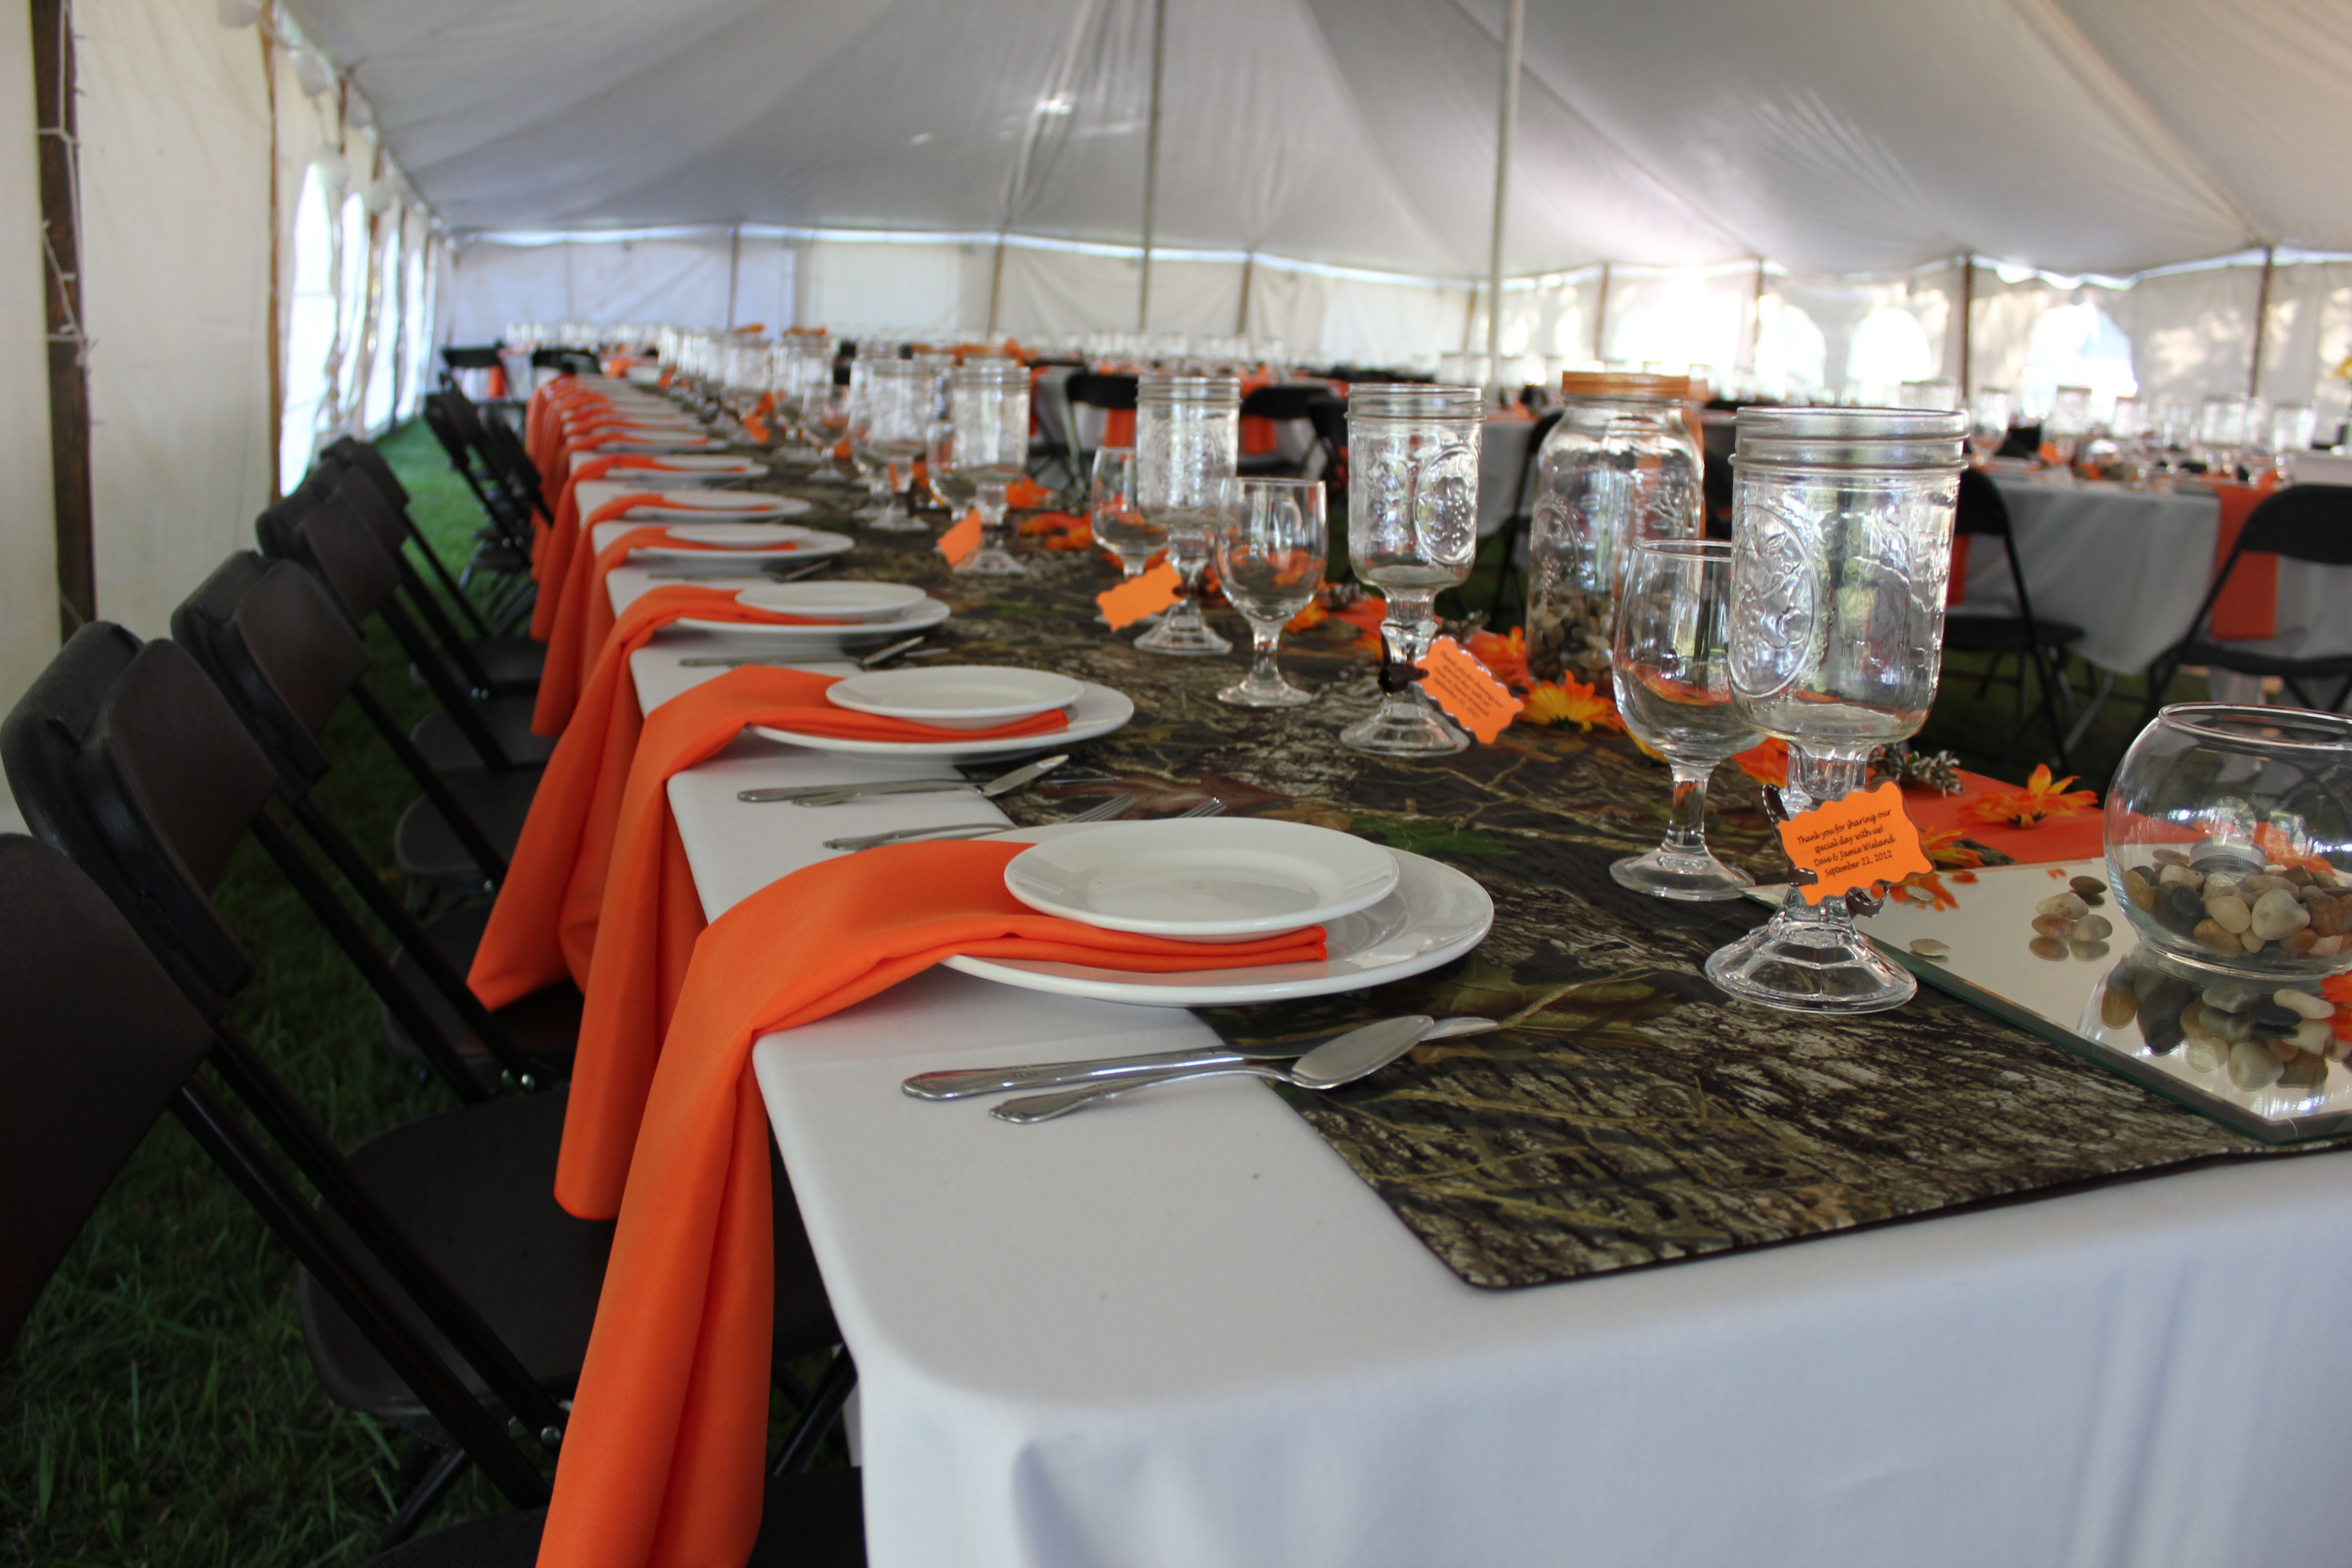 Head Table Linens Tables Chairs China And Tent By Rent Rite Of Saginaw Michigan Head Table Table Linens Table